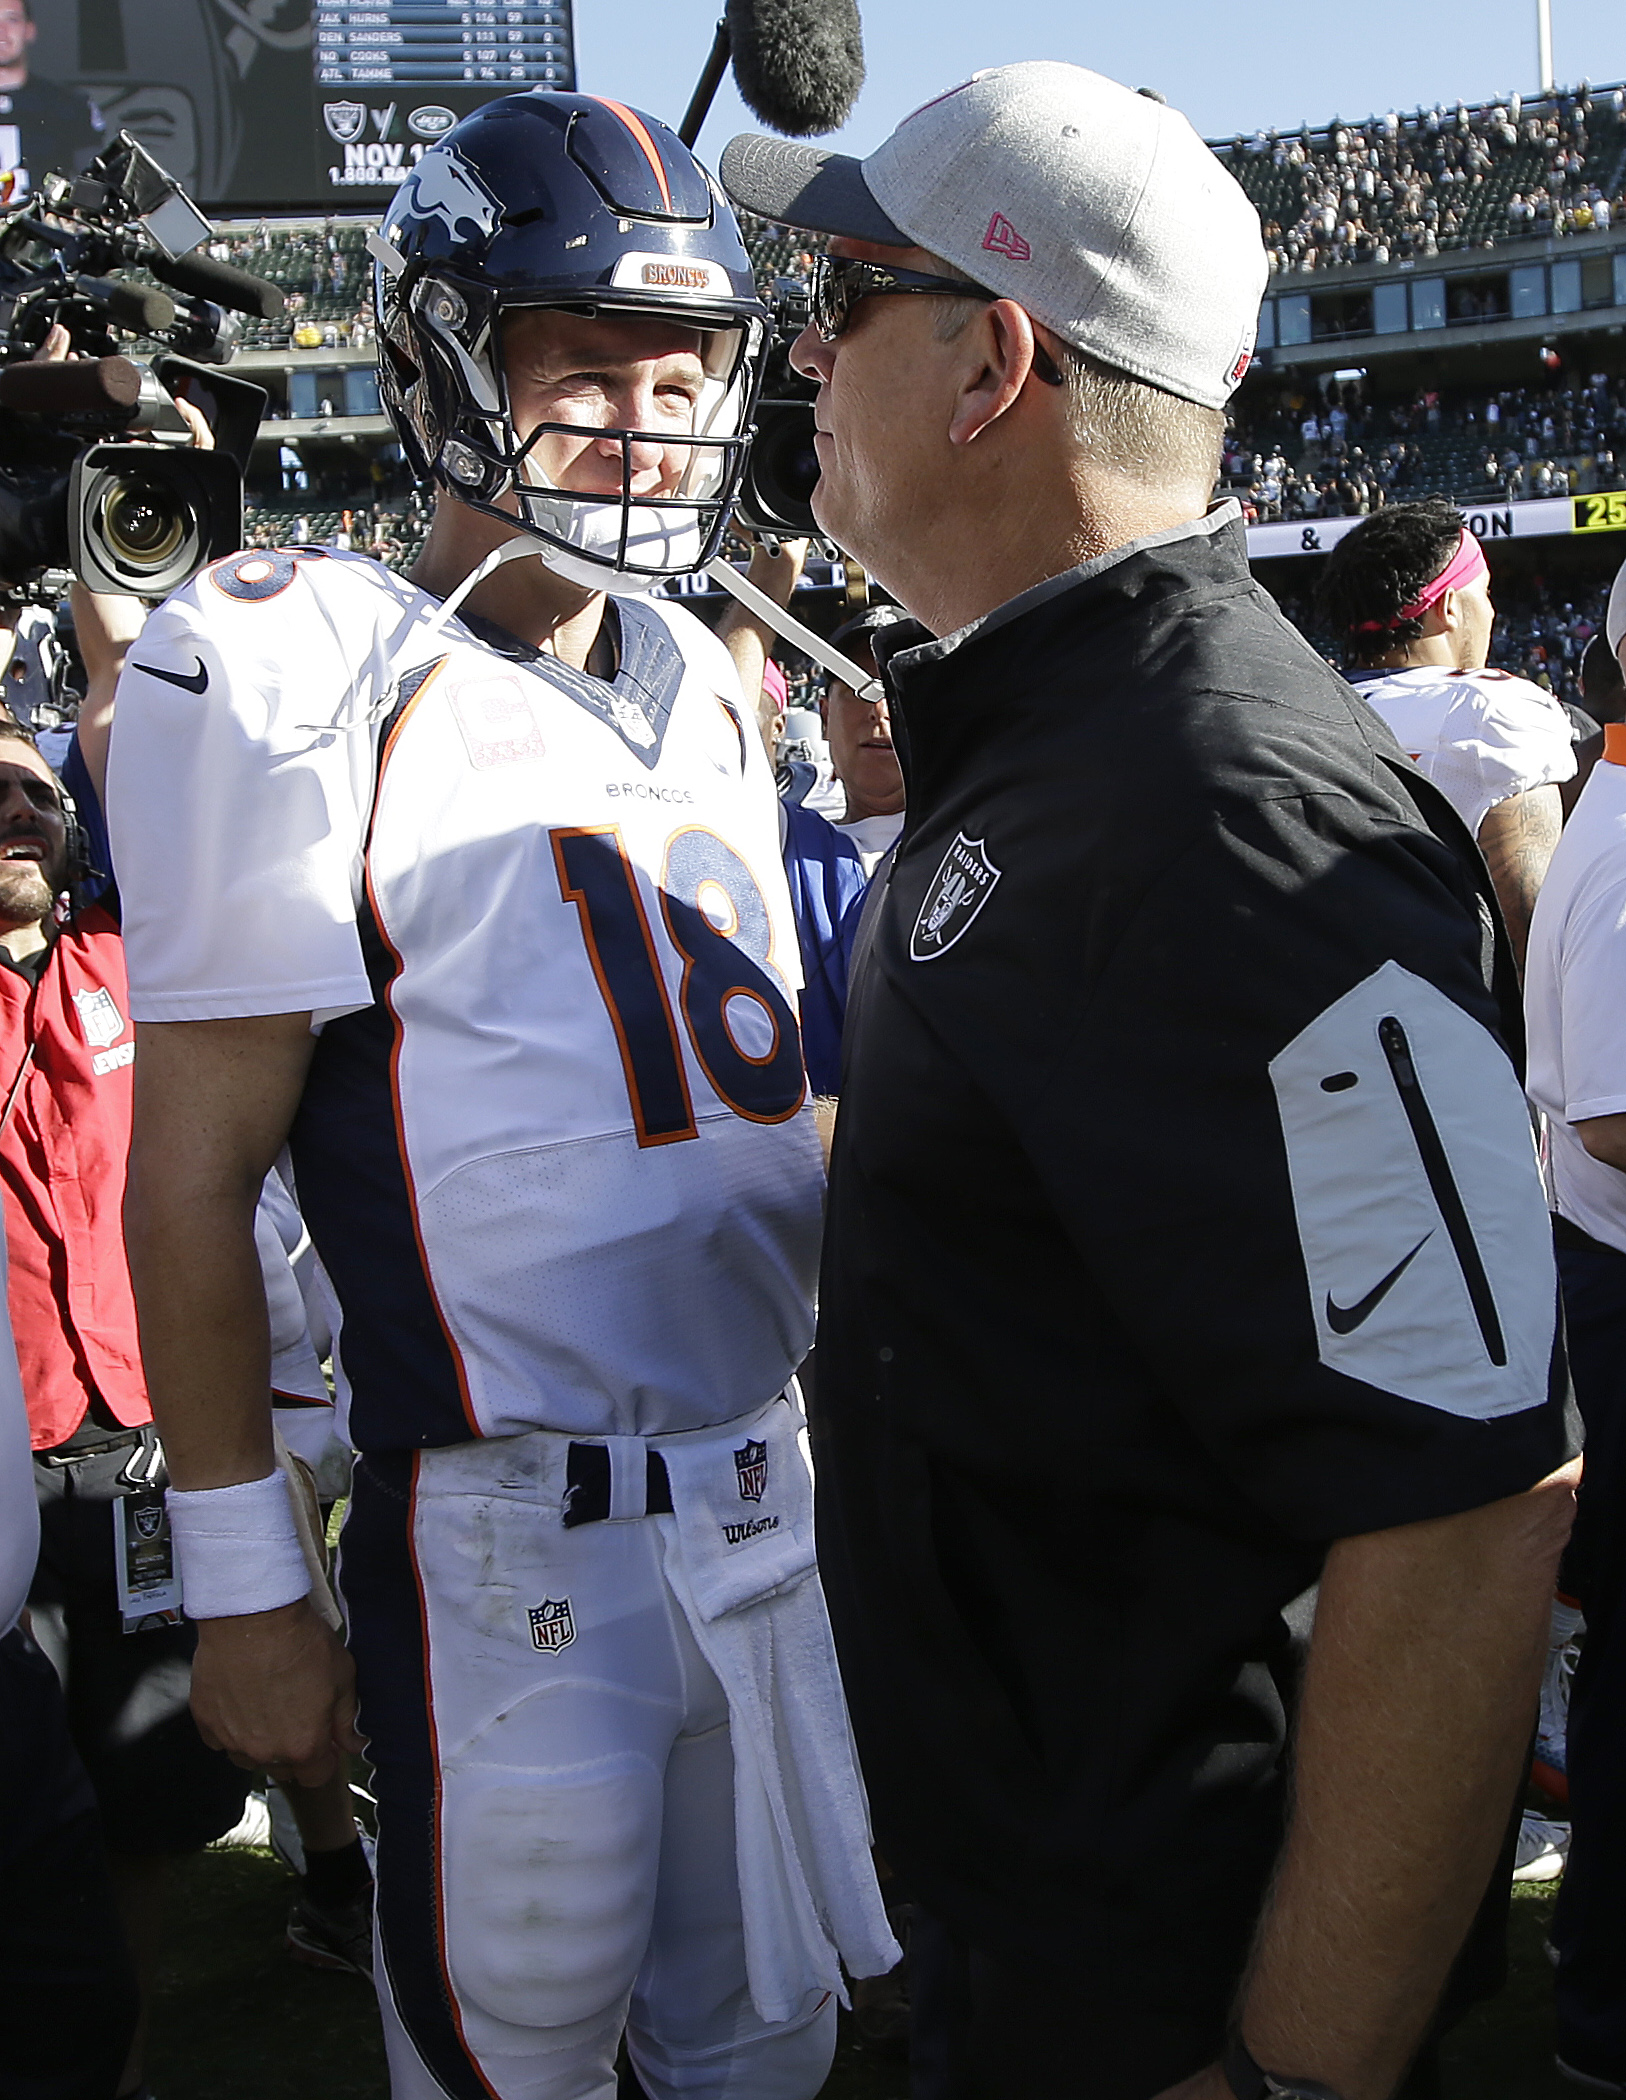 Denver Broncos quarterback Peyton Manning (18) greets Oakland Raiders head coach Jack Del Rio after an NFL football game in Oakland, Calif., Sunday, Oct. 11, 2015. The Broncos won 16-10. (AP Photo/Marcio Jose Sanchez)